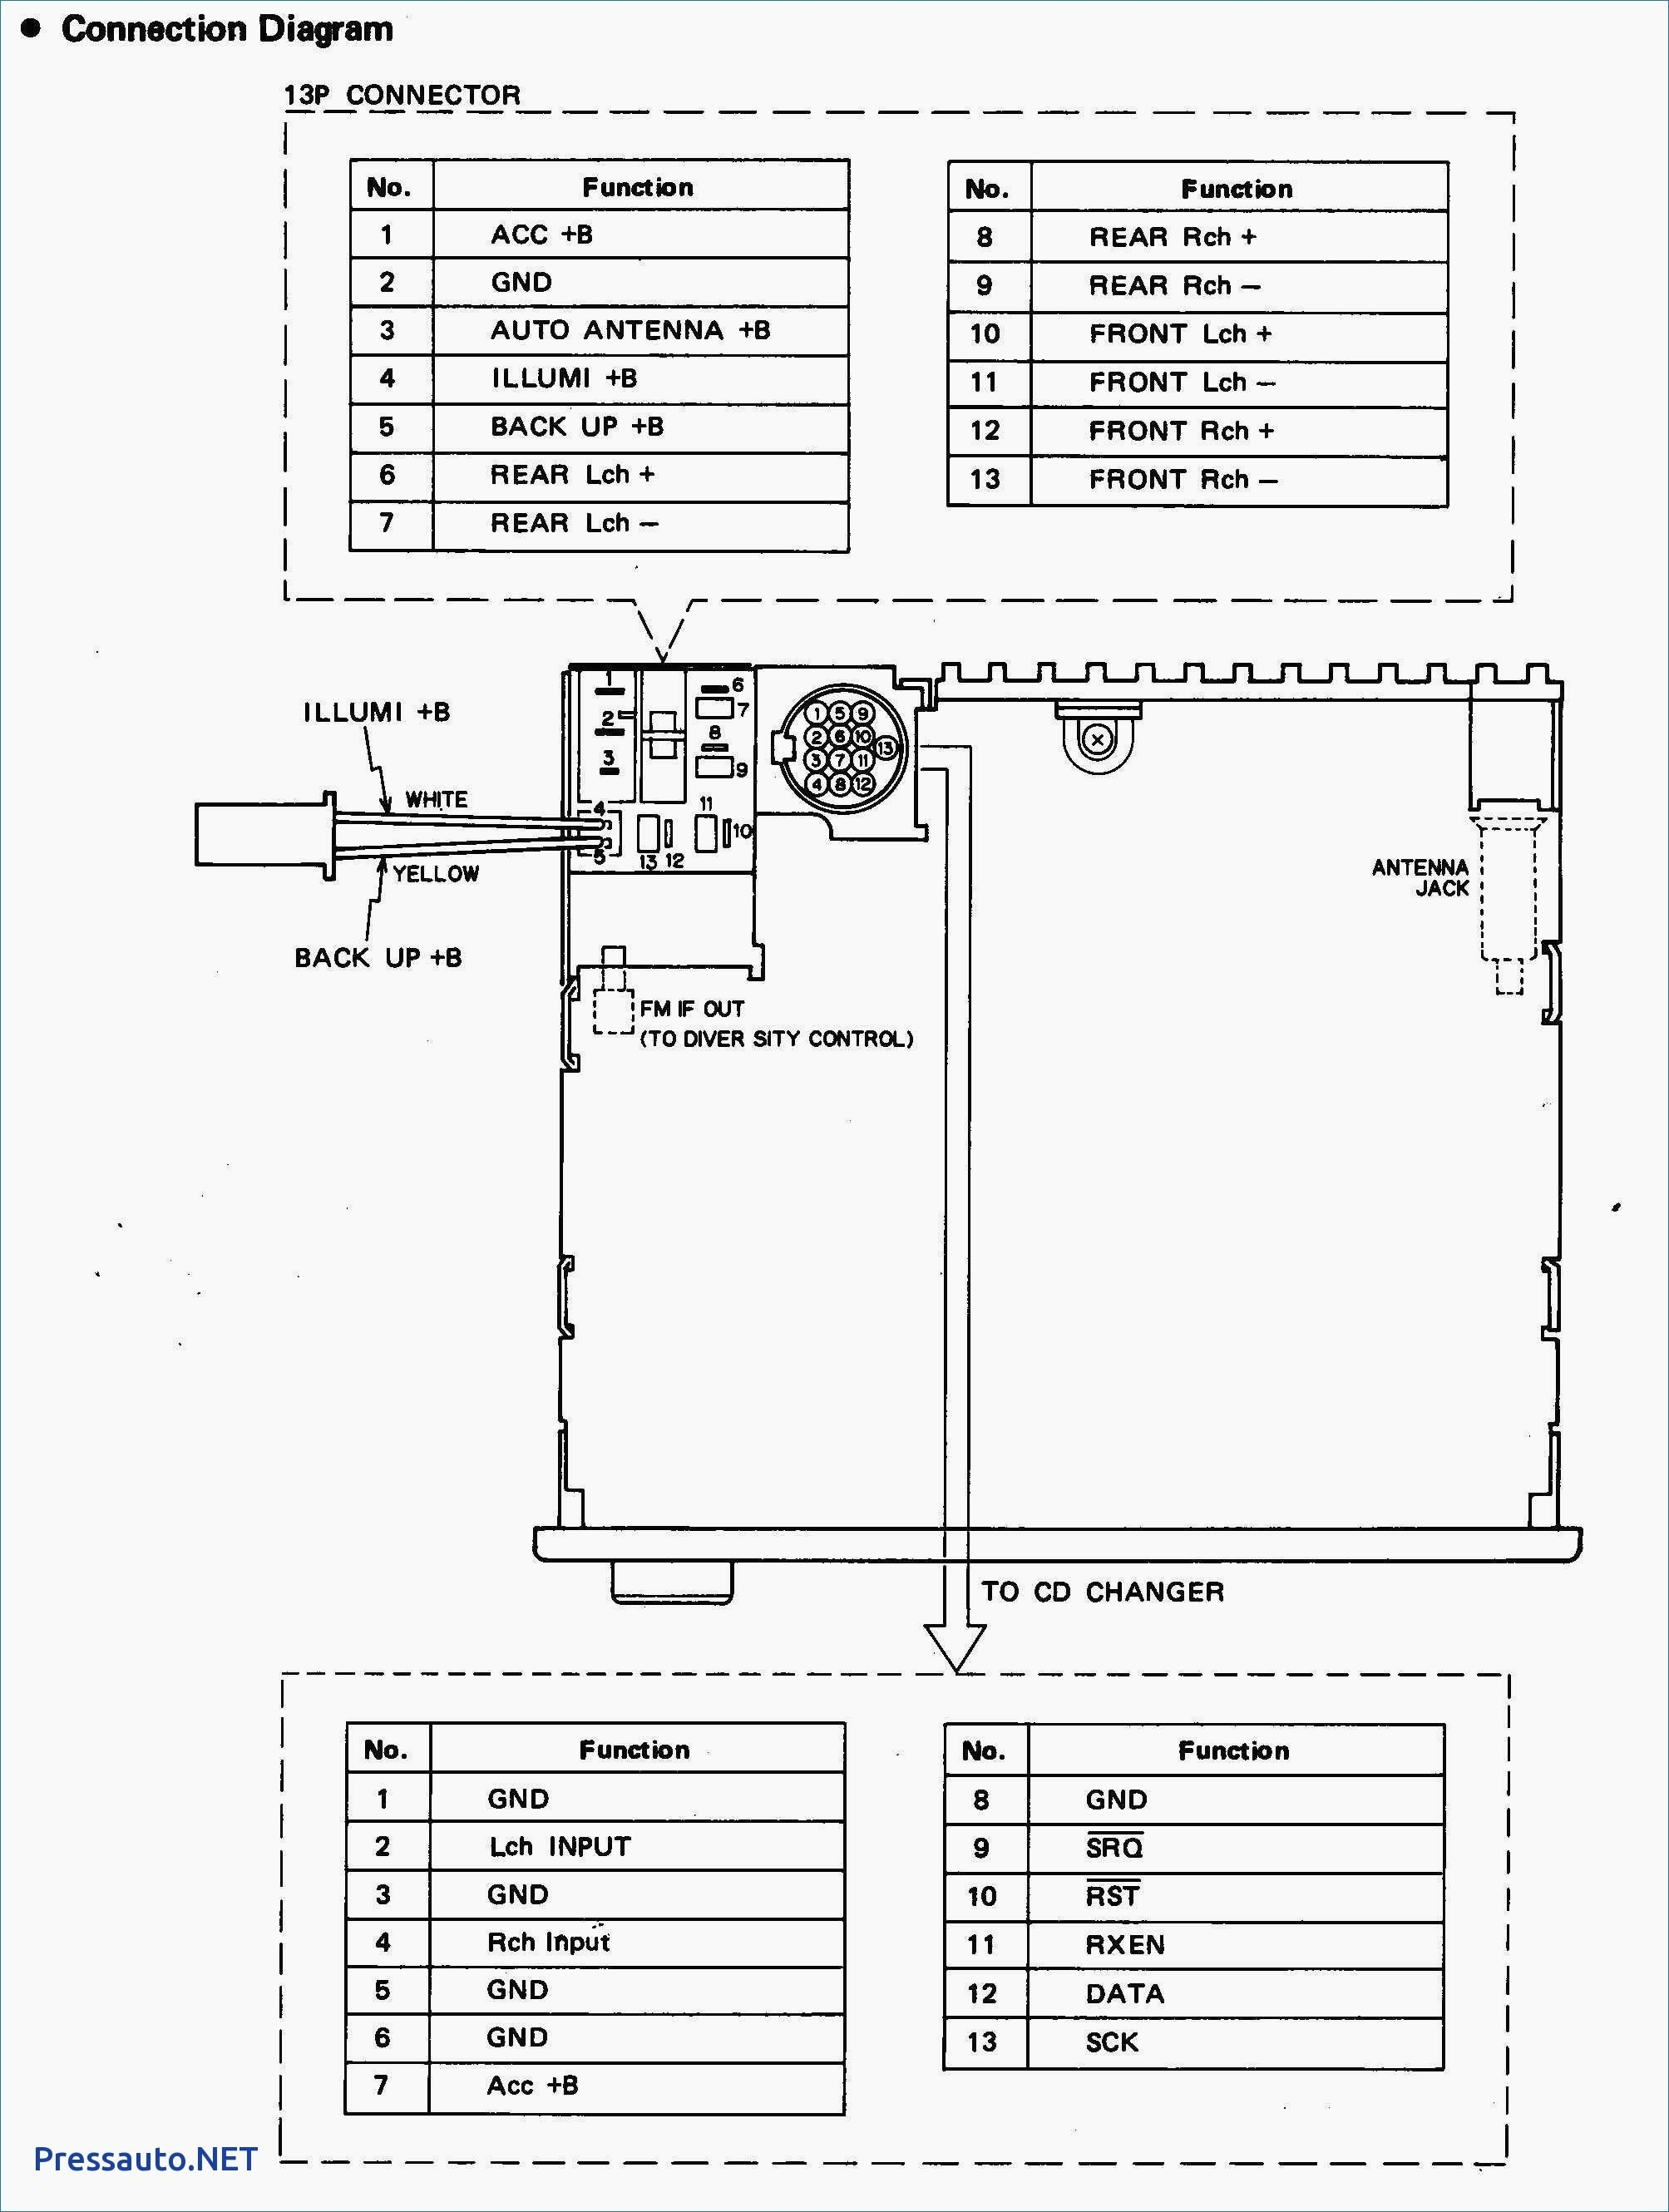 pioneer deh 150mp wiring harness diagram Download-Pioneer Wiring Diagram Beautiful Pioneer Deh P4700mp Wiring Diagram Best Wiring Diagram Pioneer Pioneer Wiring Diagram With Pioneer Deh P4700mp Wiring 6-g